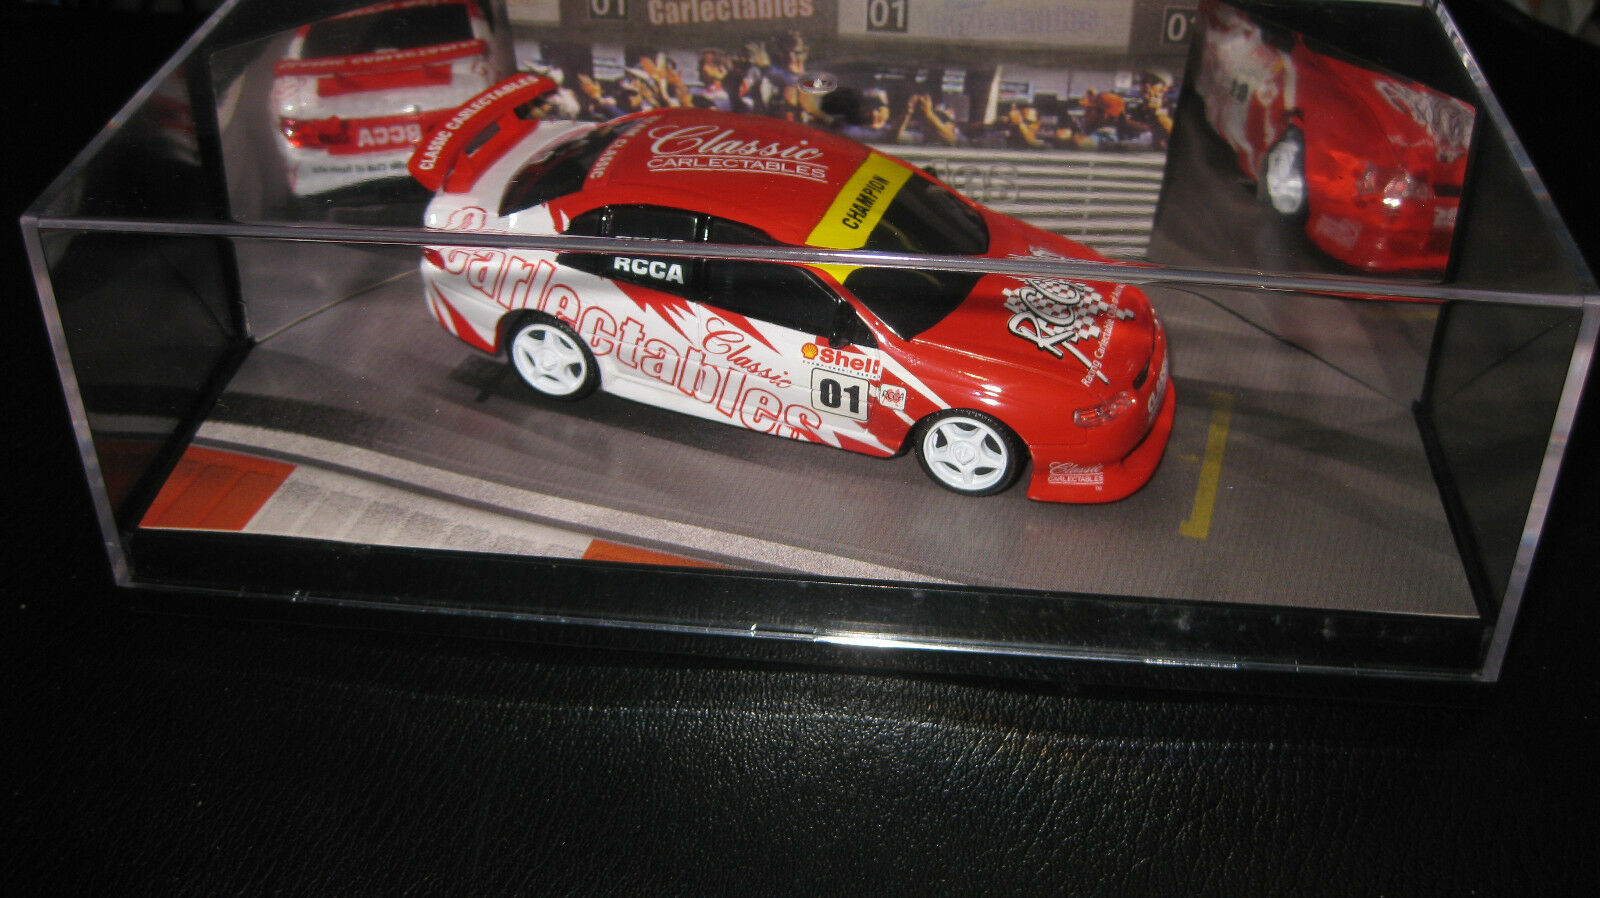 CLASSIC 1 43 SIGNATURE SERIES MEMBERS JOINING CAR HOLDEN COMMODORE RCCA SIGNED